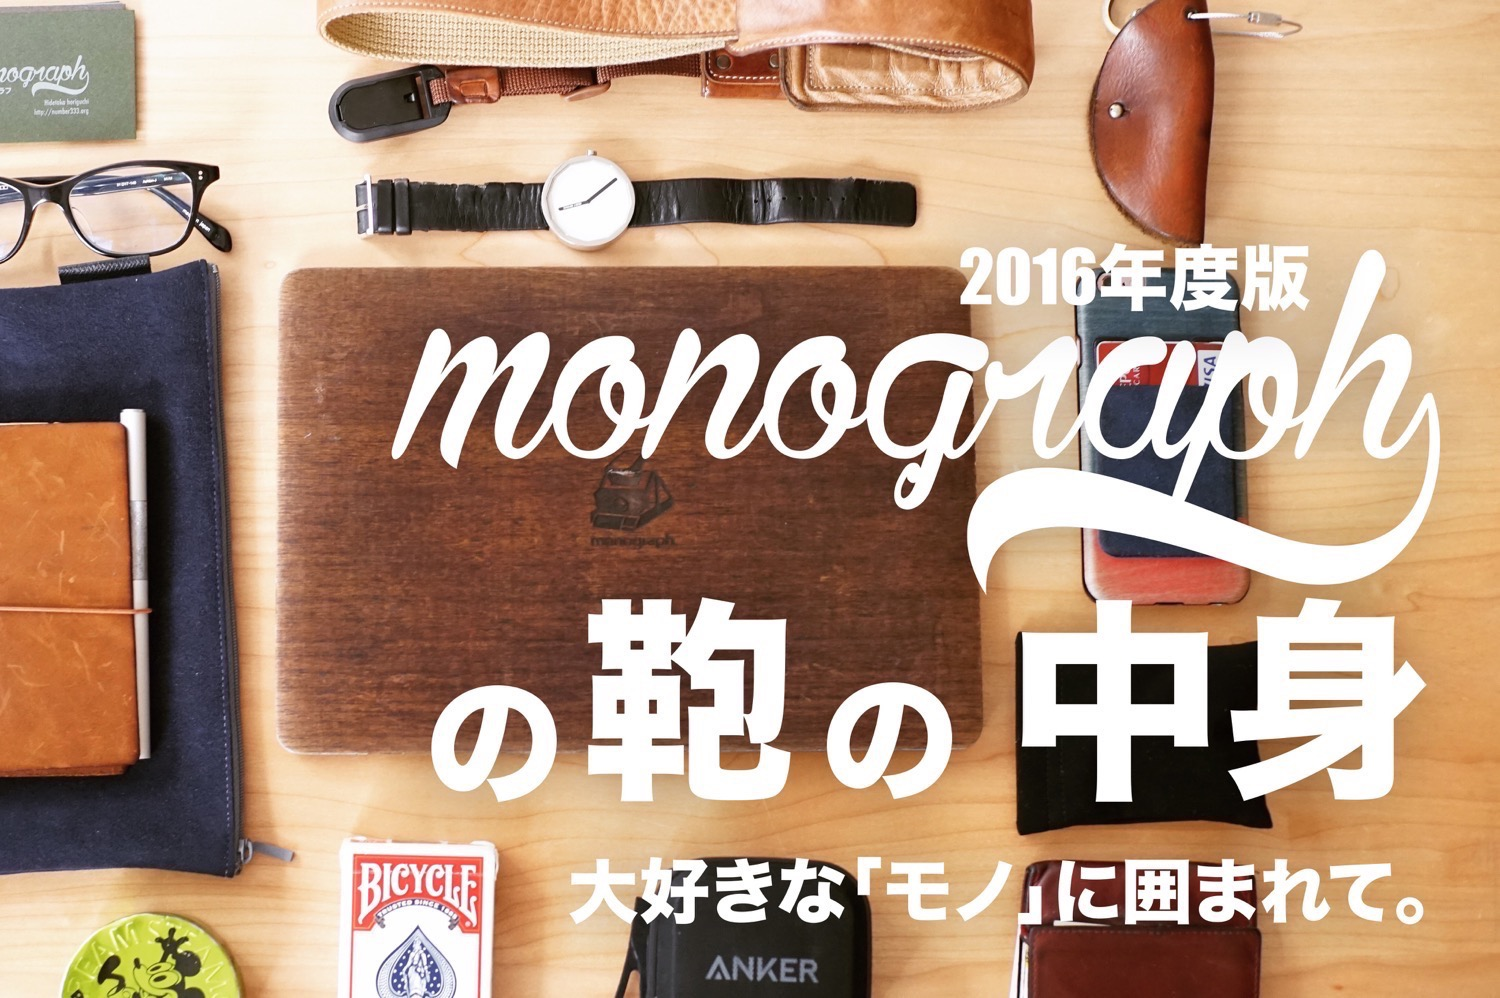 Monograph goods in bag23